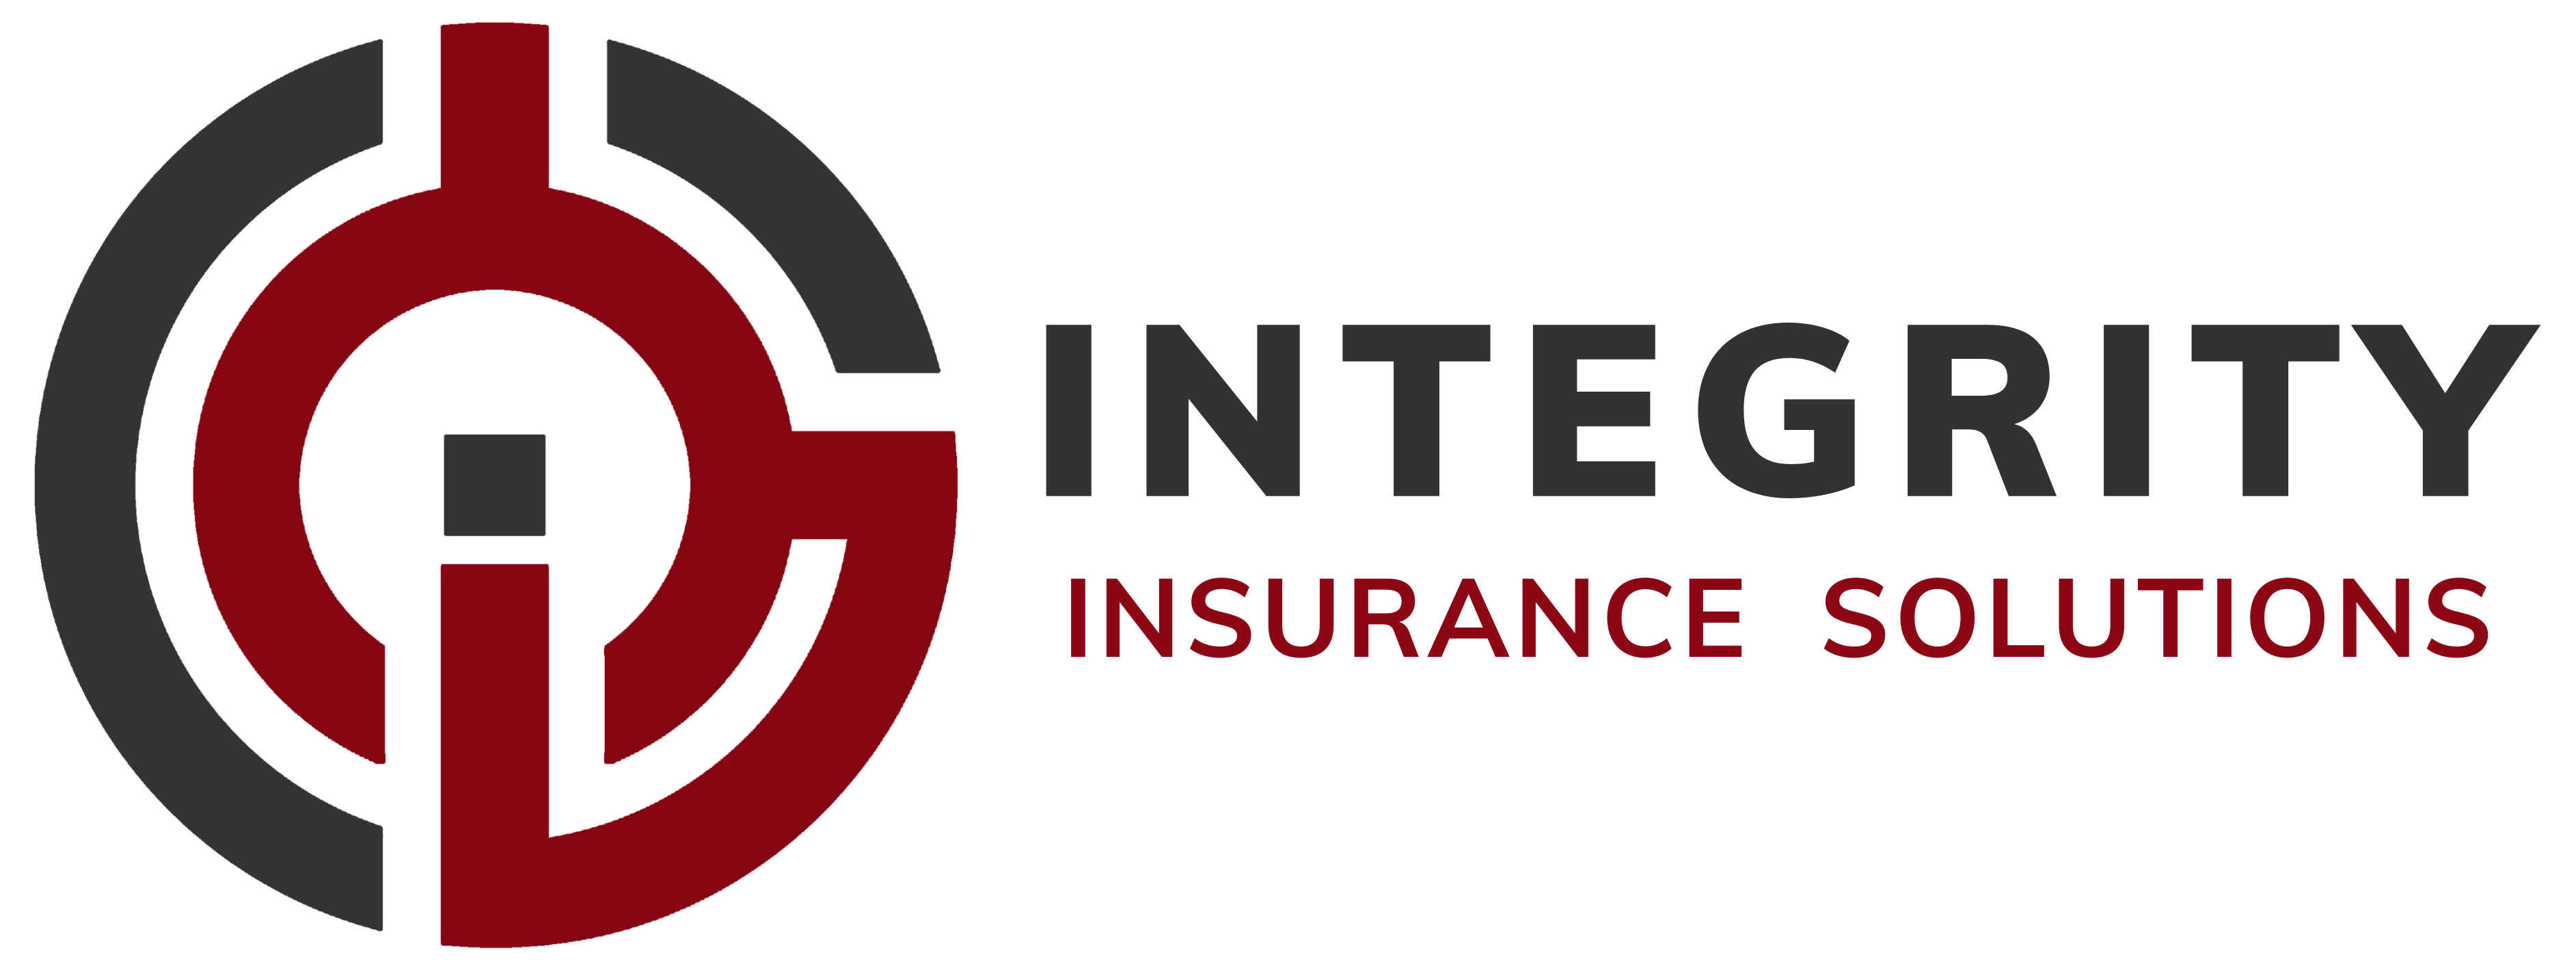 Integrity Insurance Solutions